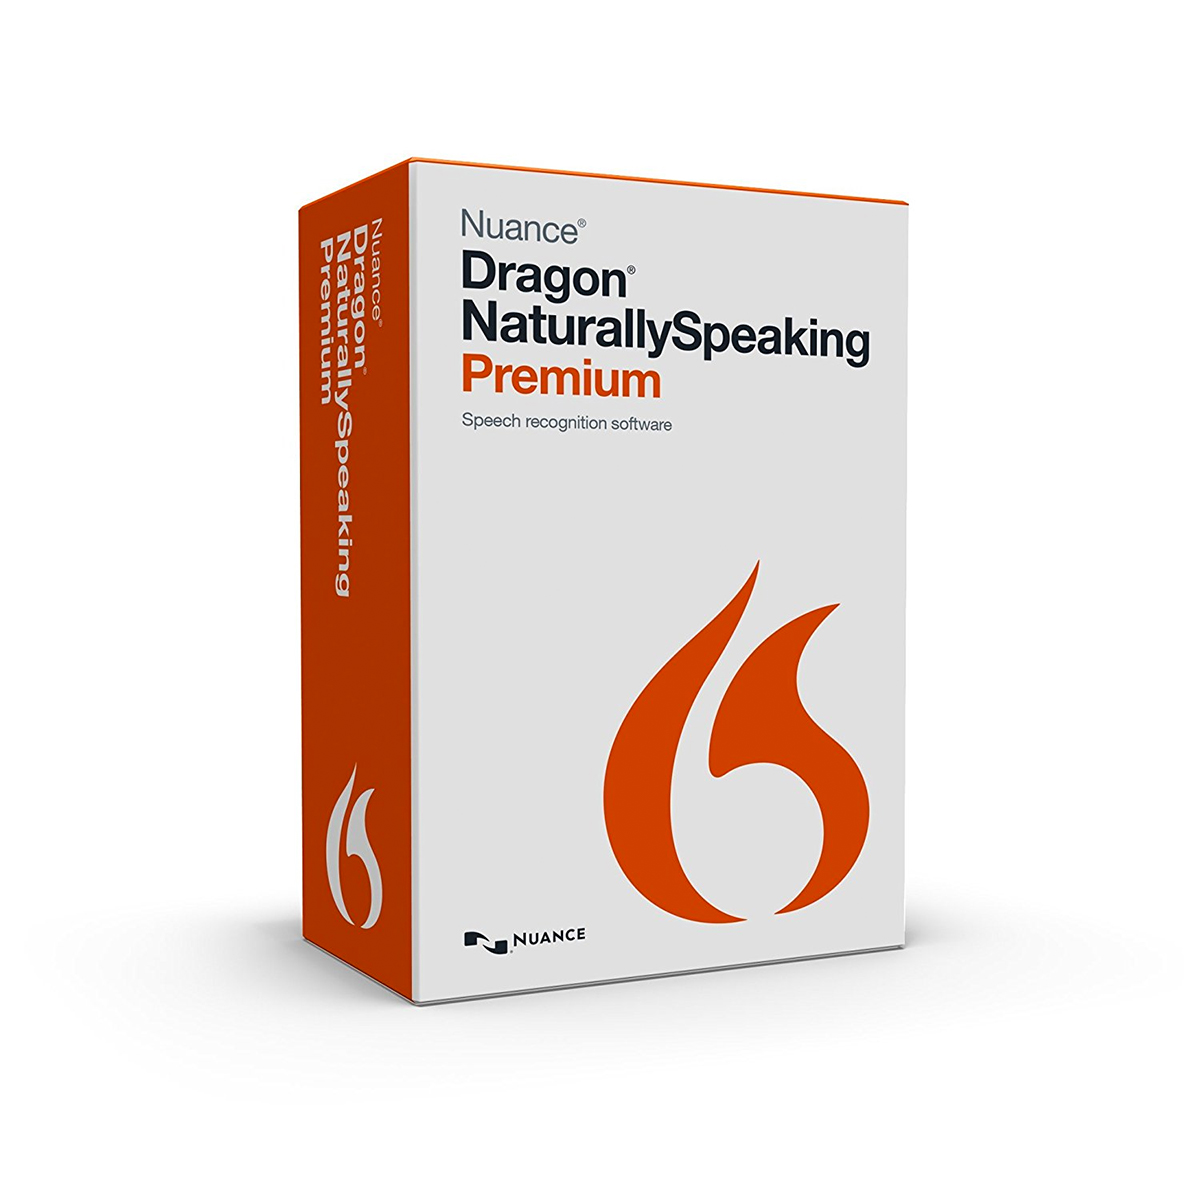 Nuance Dragon NaturallySpeaking Premium 13.0 International English Upgrade Brown Bag